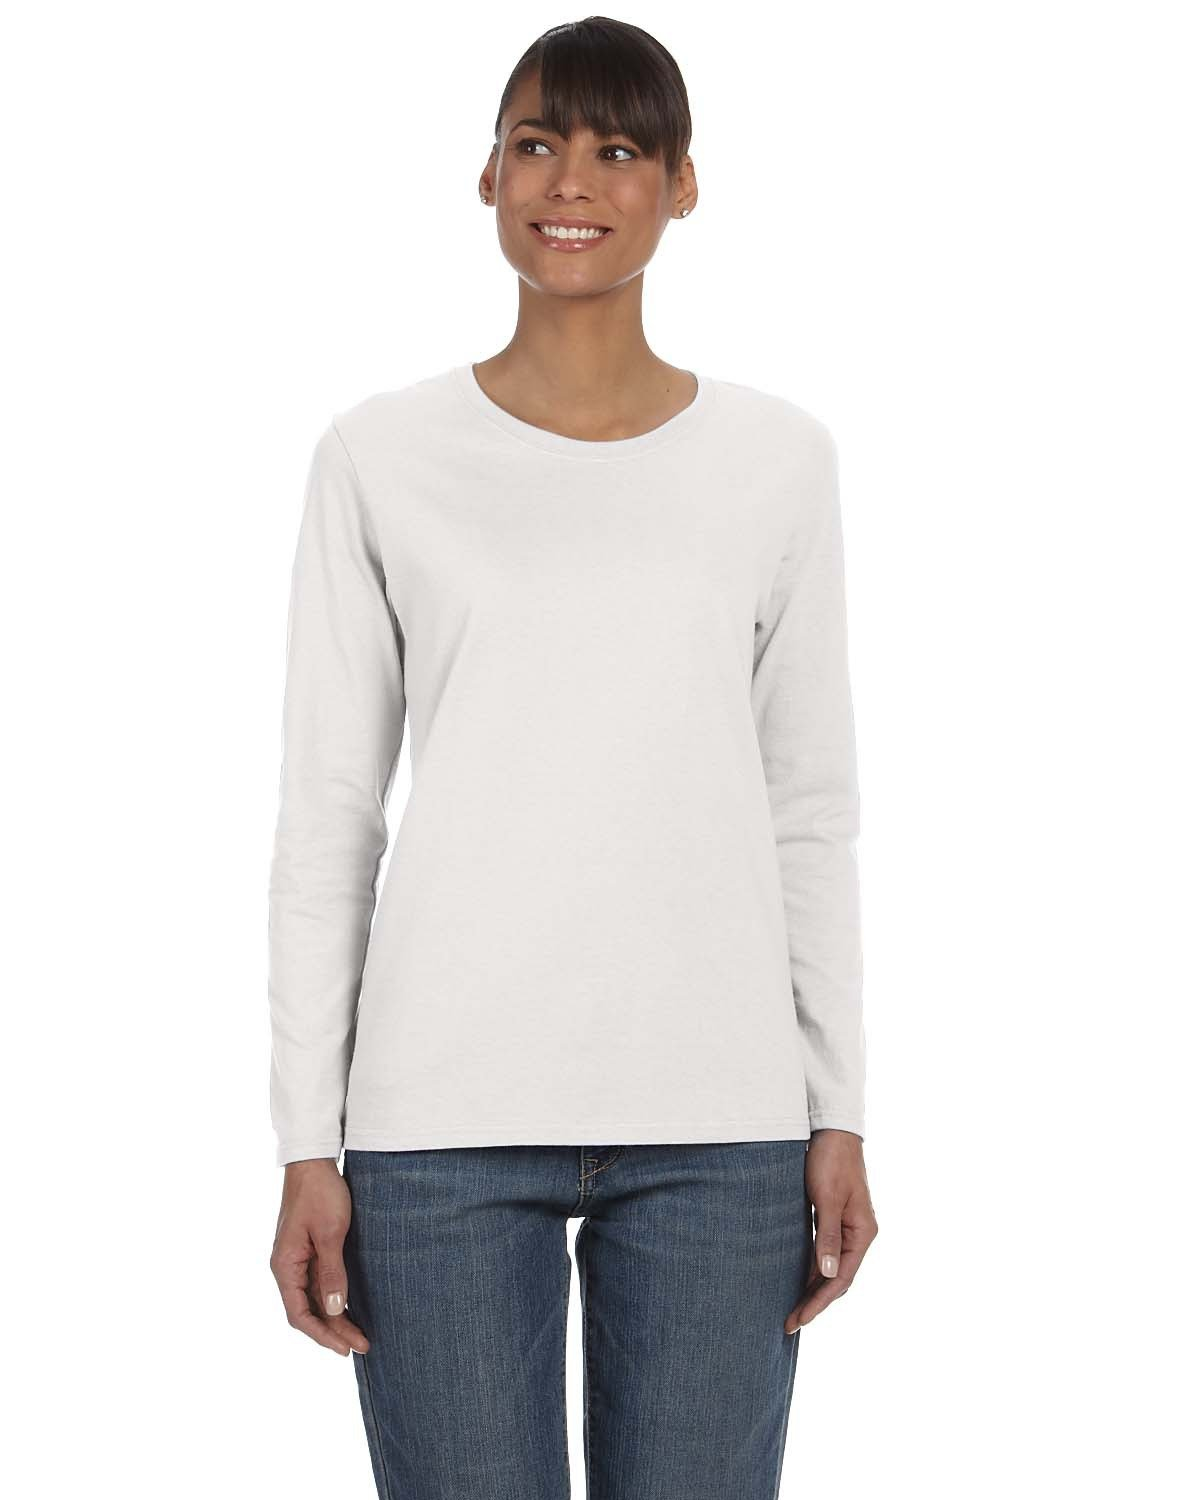 Gildan - G540L - Ladies' 5.3 oz. Long-Sleeve T-Shirt